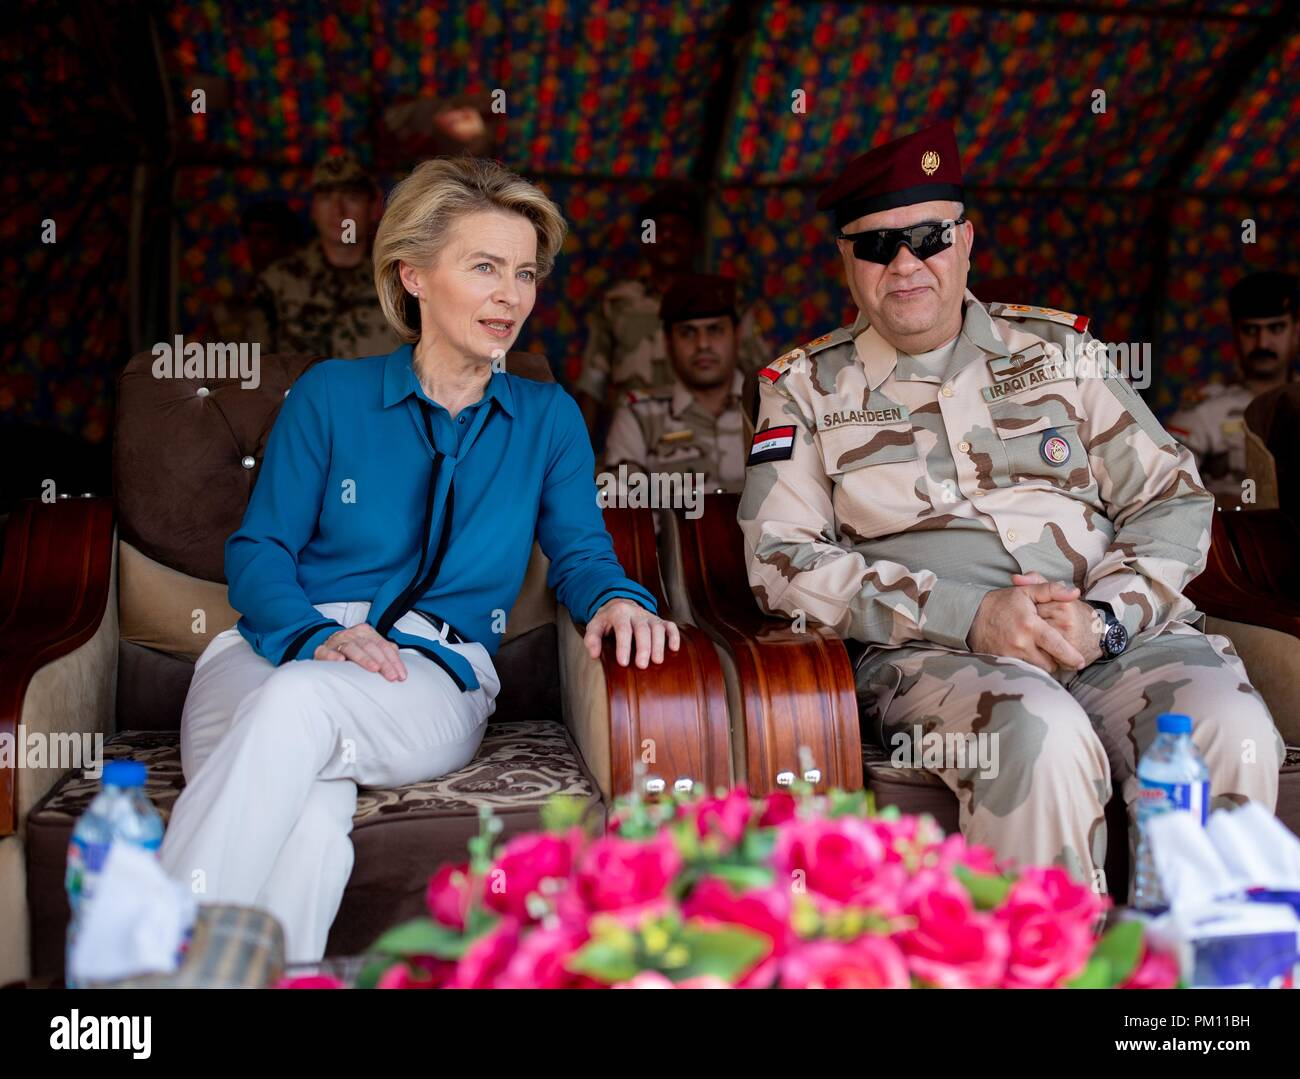 Taji, Iraq. 16th Sep, 2018. Ursula von der Leyen (CDU) and an Iraqi general observing German and Iraqi soldiers at the Iraqi military base in Taji during a CBRN defence exercise. The Minister is also in Iraq for political talks. Credit: Kay Nietfeld/dpa/Alamy Live News - Stock Image